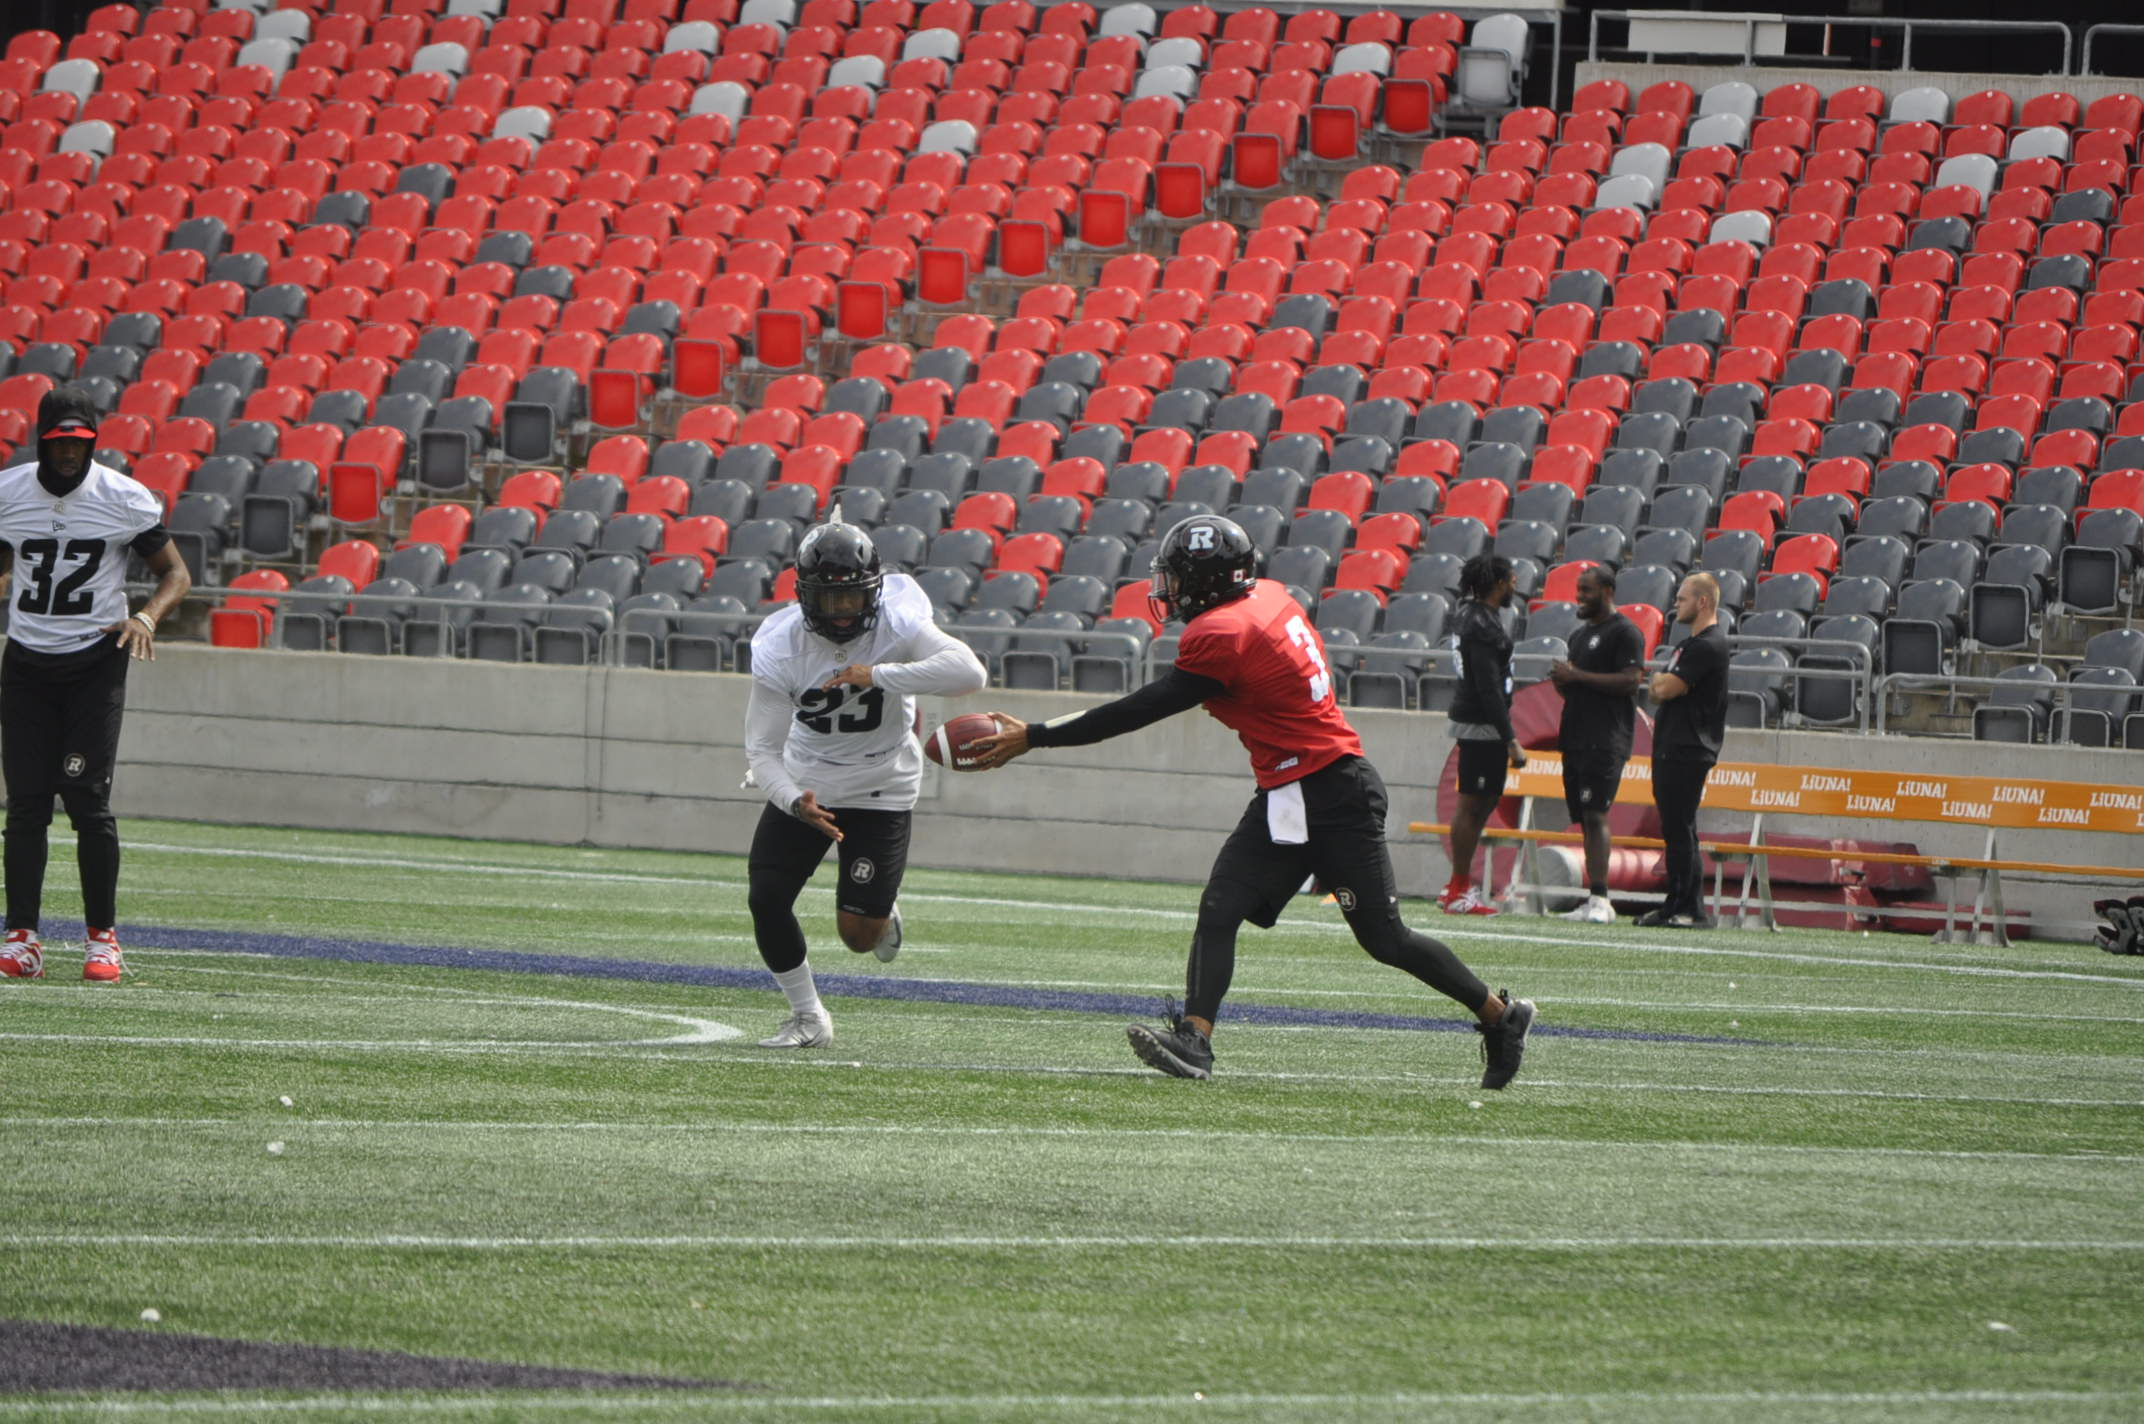 Redblacks look to fight off negativity as they prepare to take on the B.C Lions for a second straight week